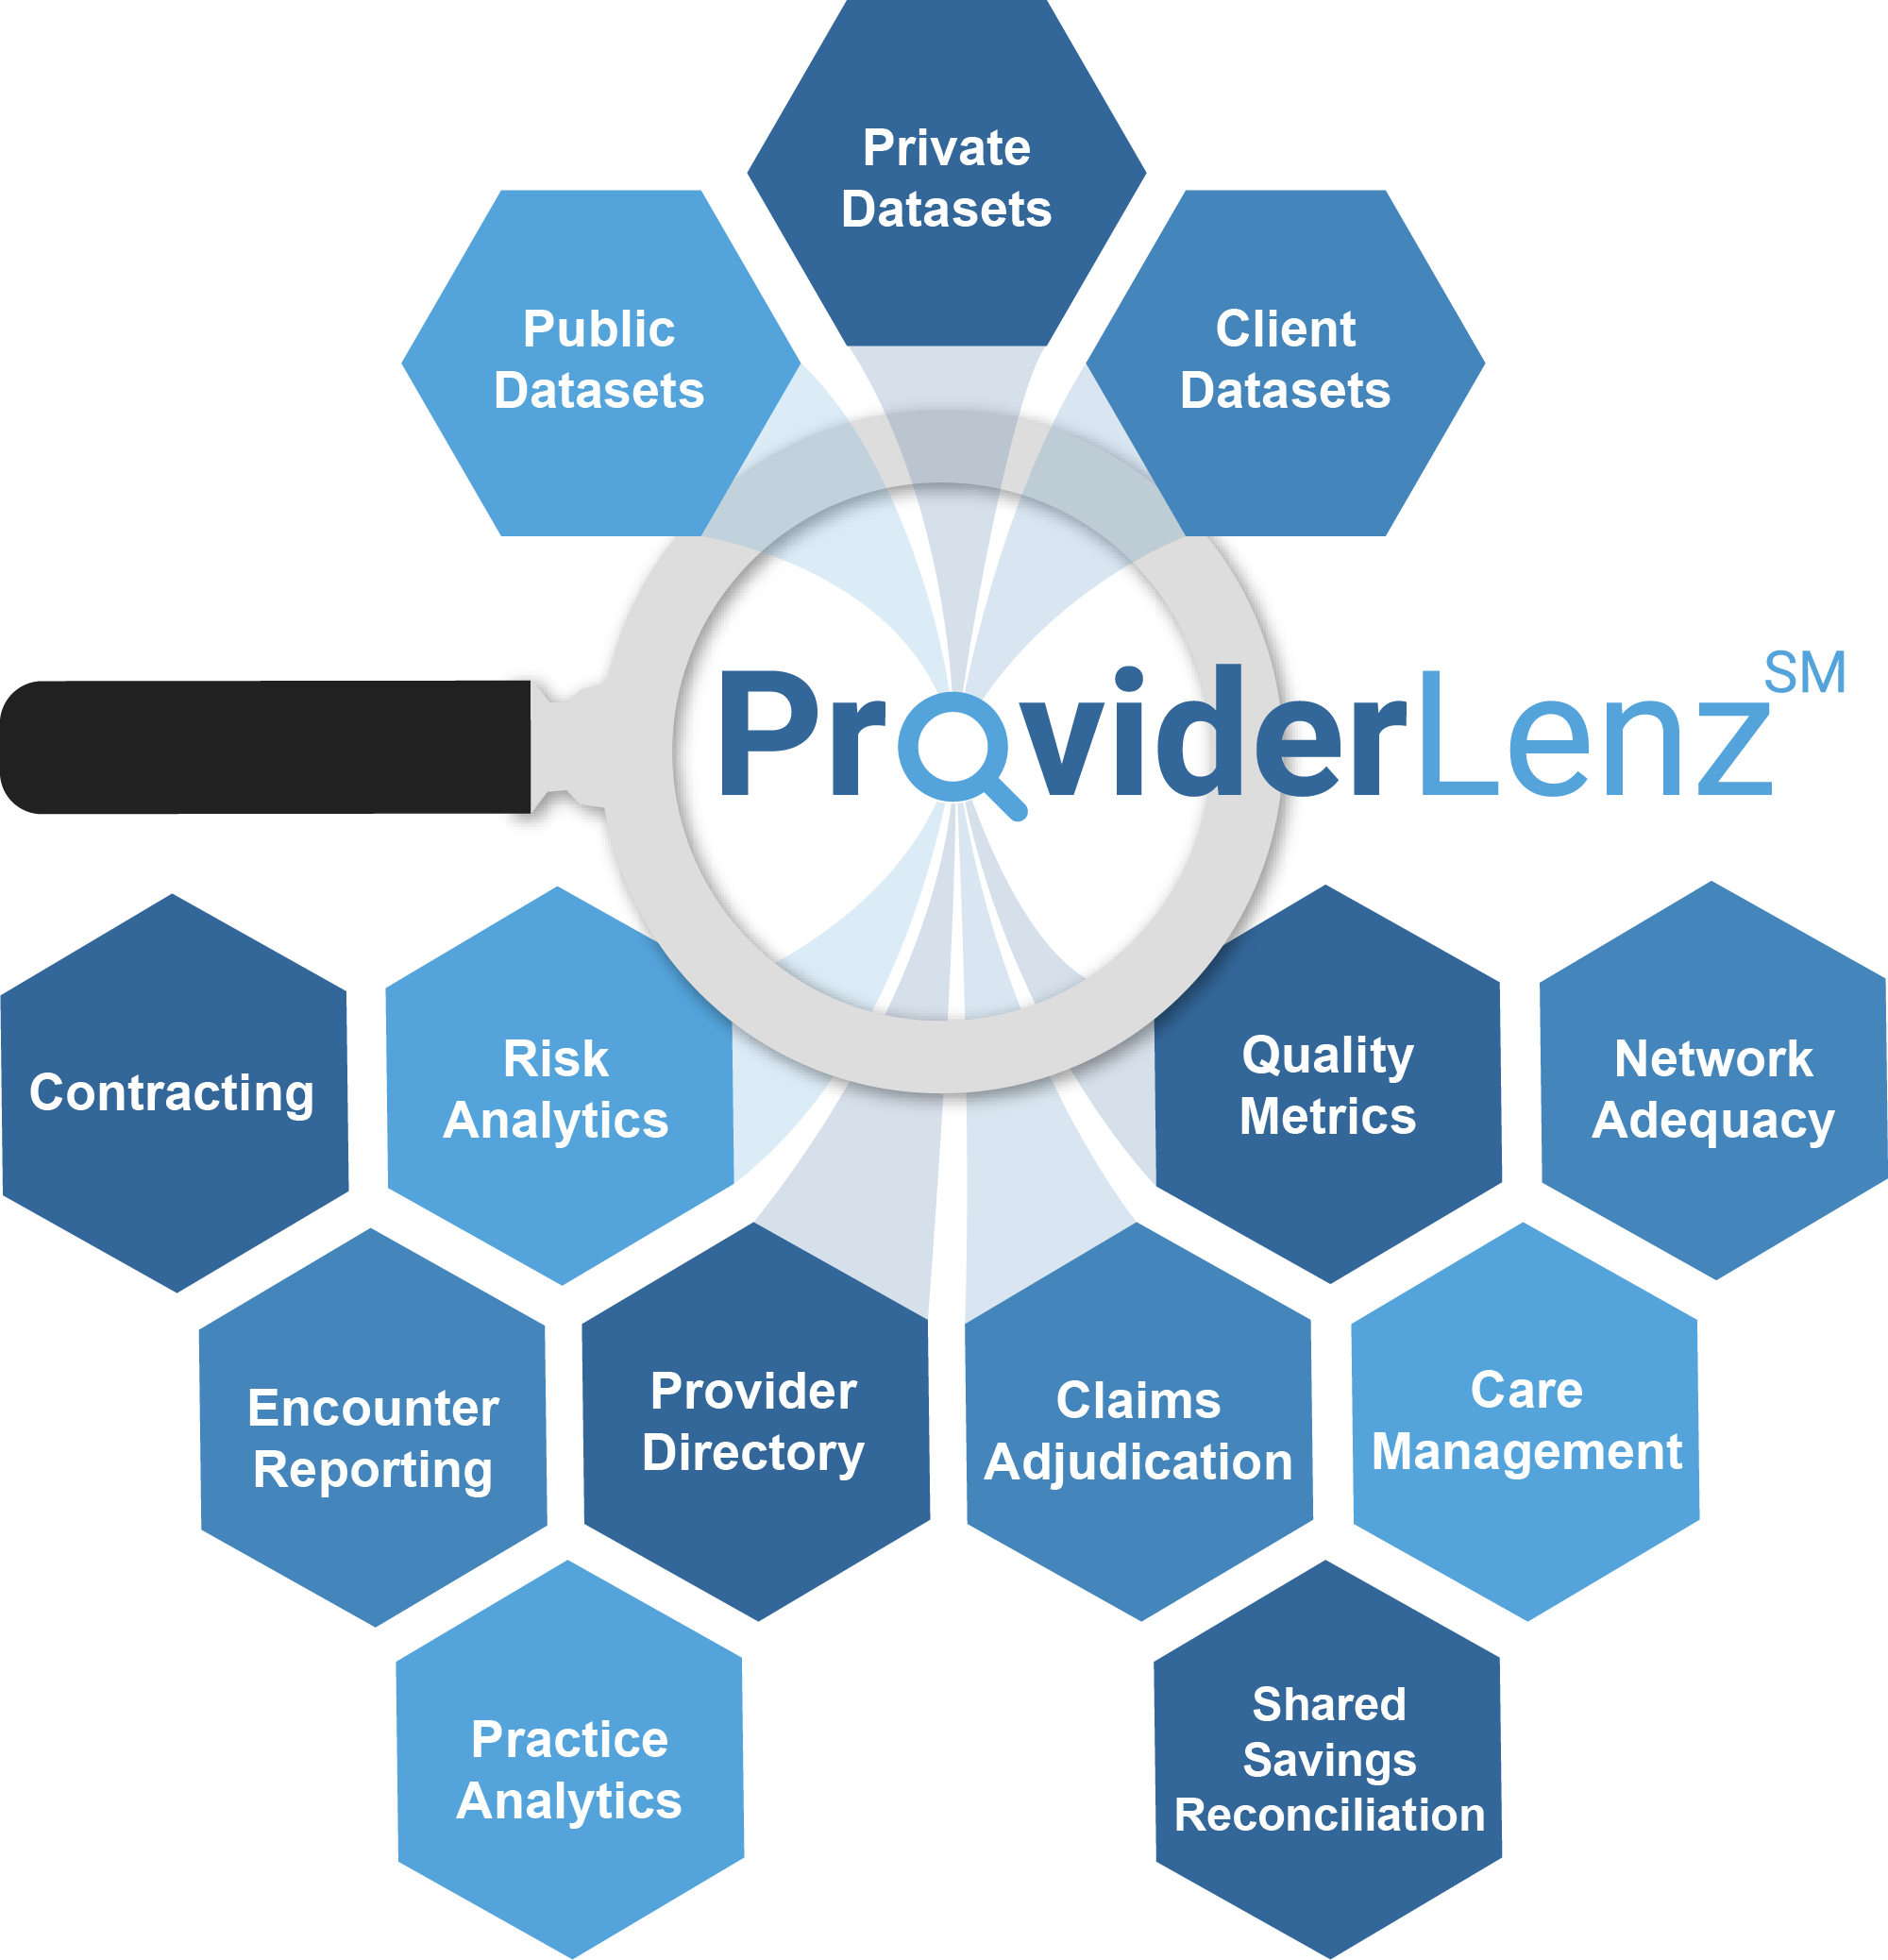 ProviderLenz Use Cases Graphic